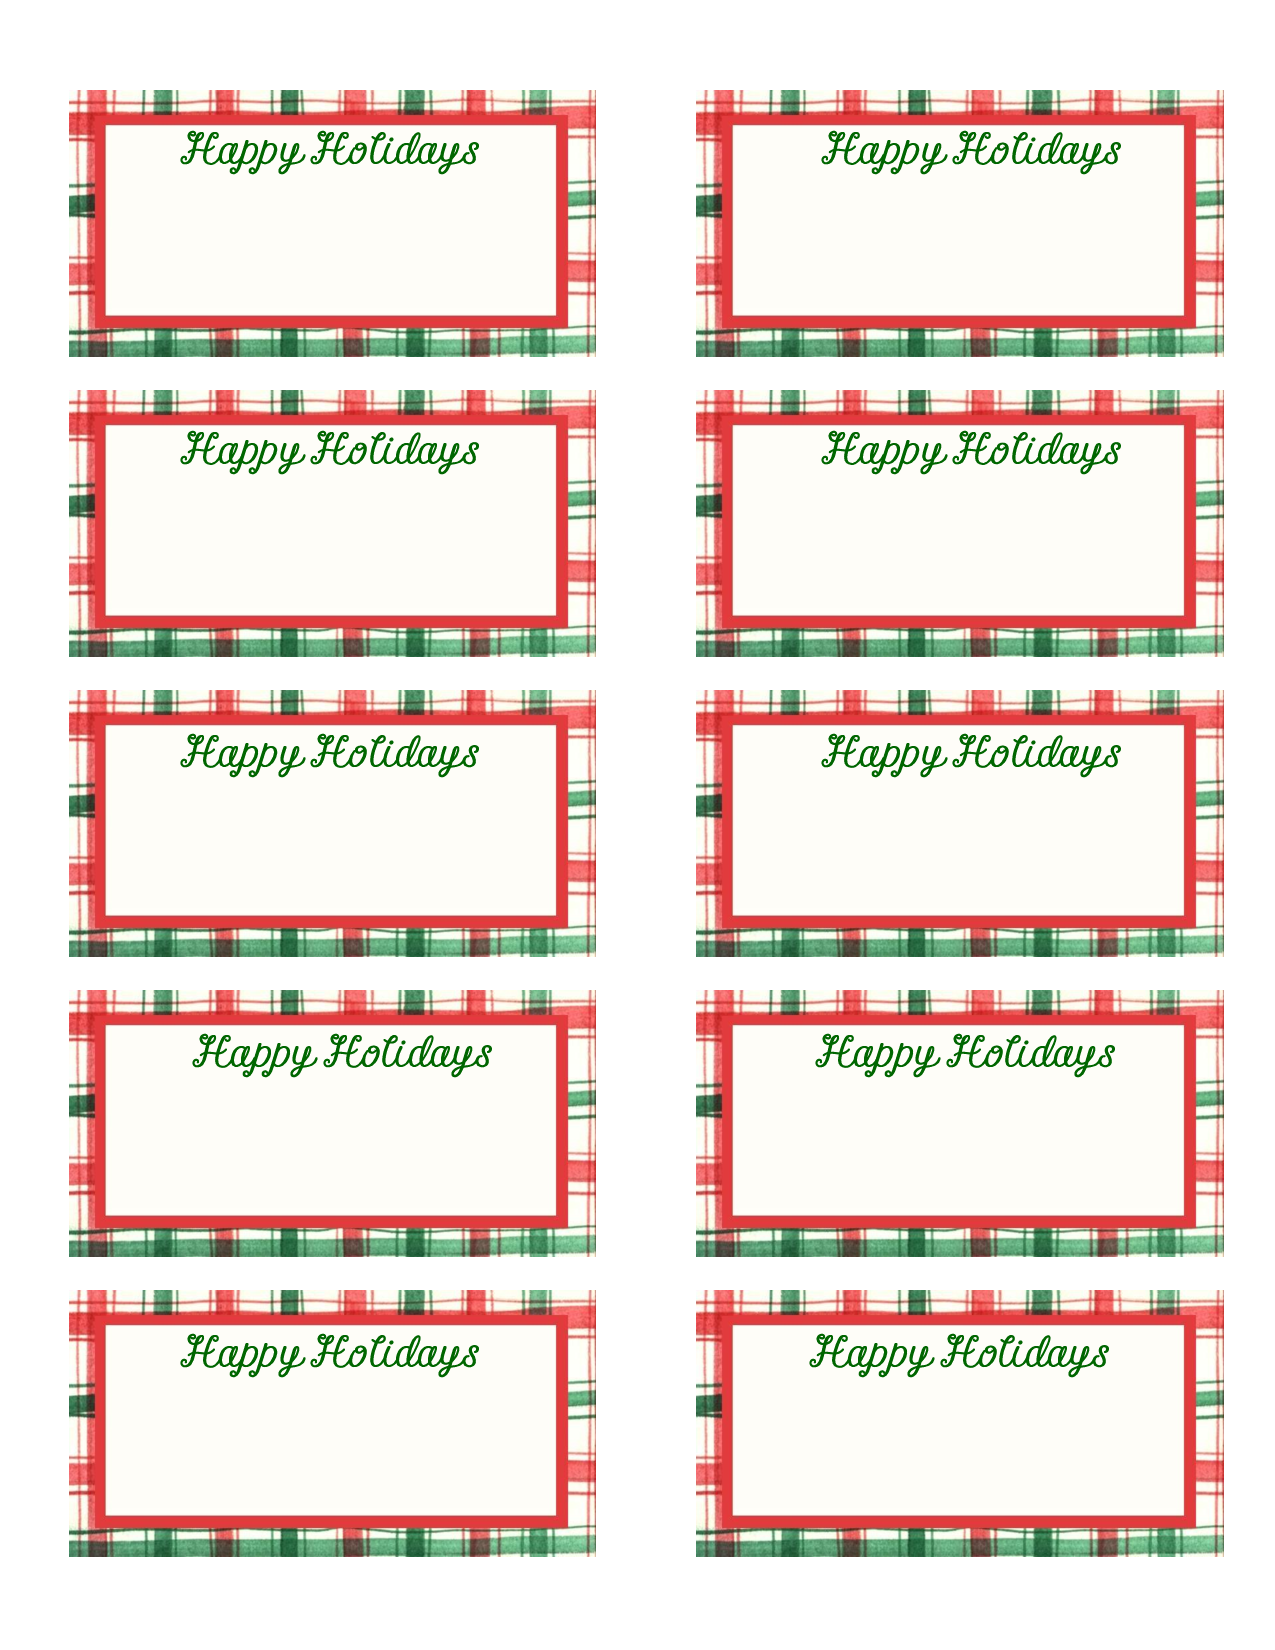 It's just a picture of Printable Christmas Gift Labels for minimalist